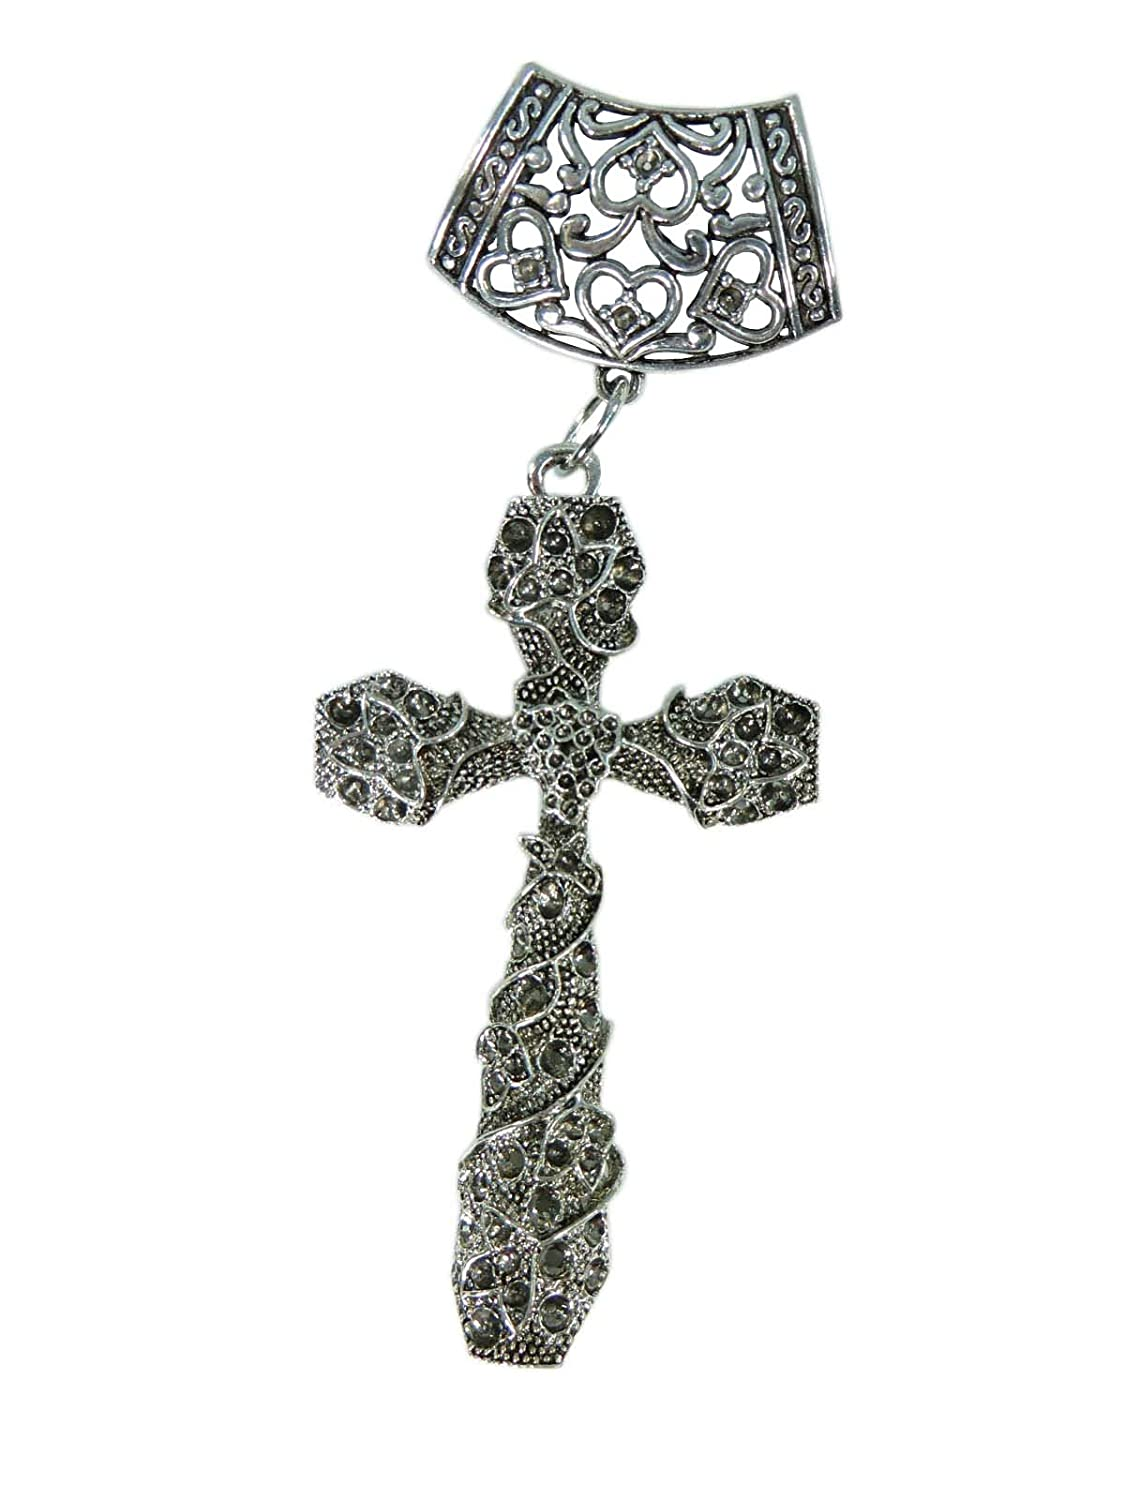 gothic cross scarf pendant bail slide set. Jewelry finding accessories for DIY jewelry scarf necklace.